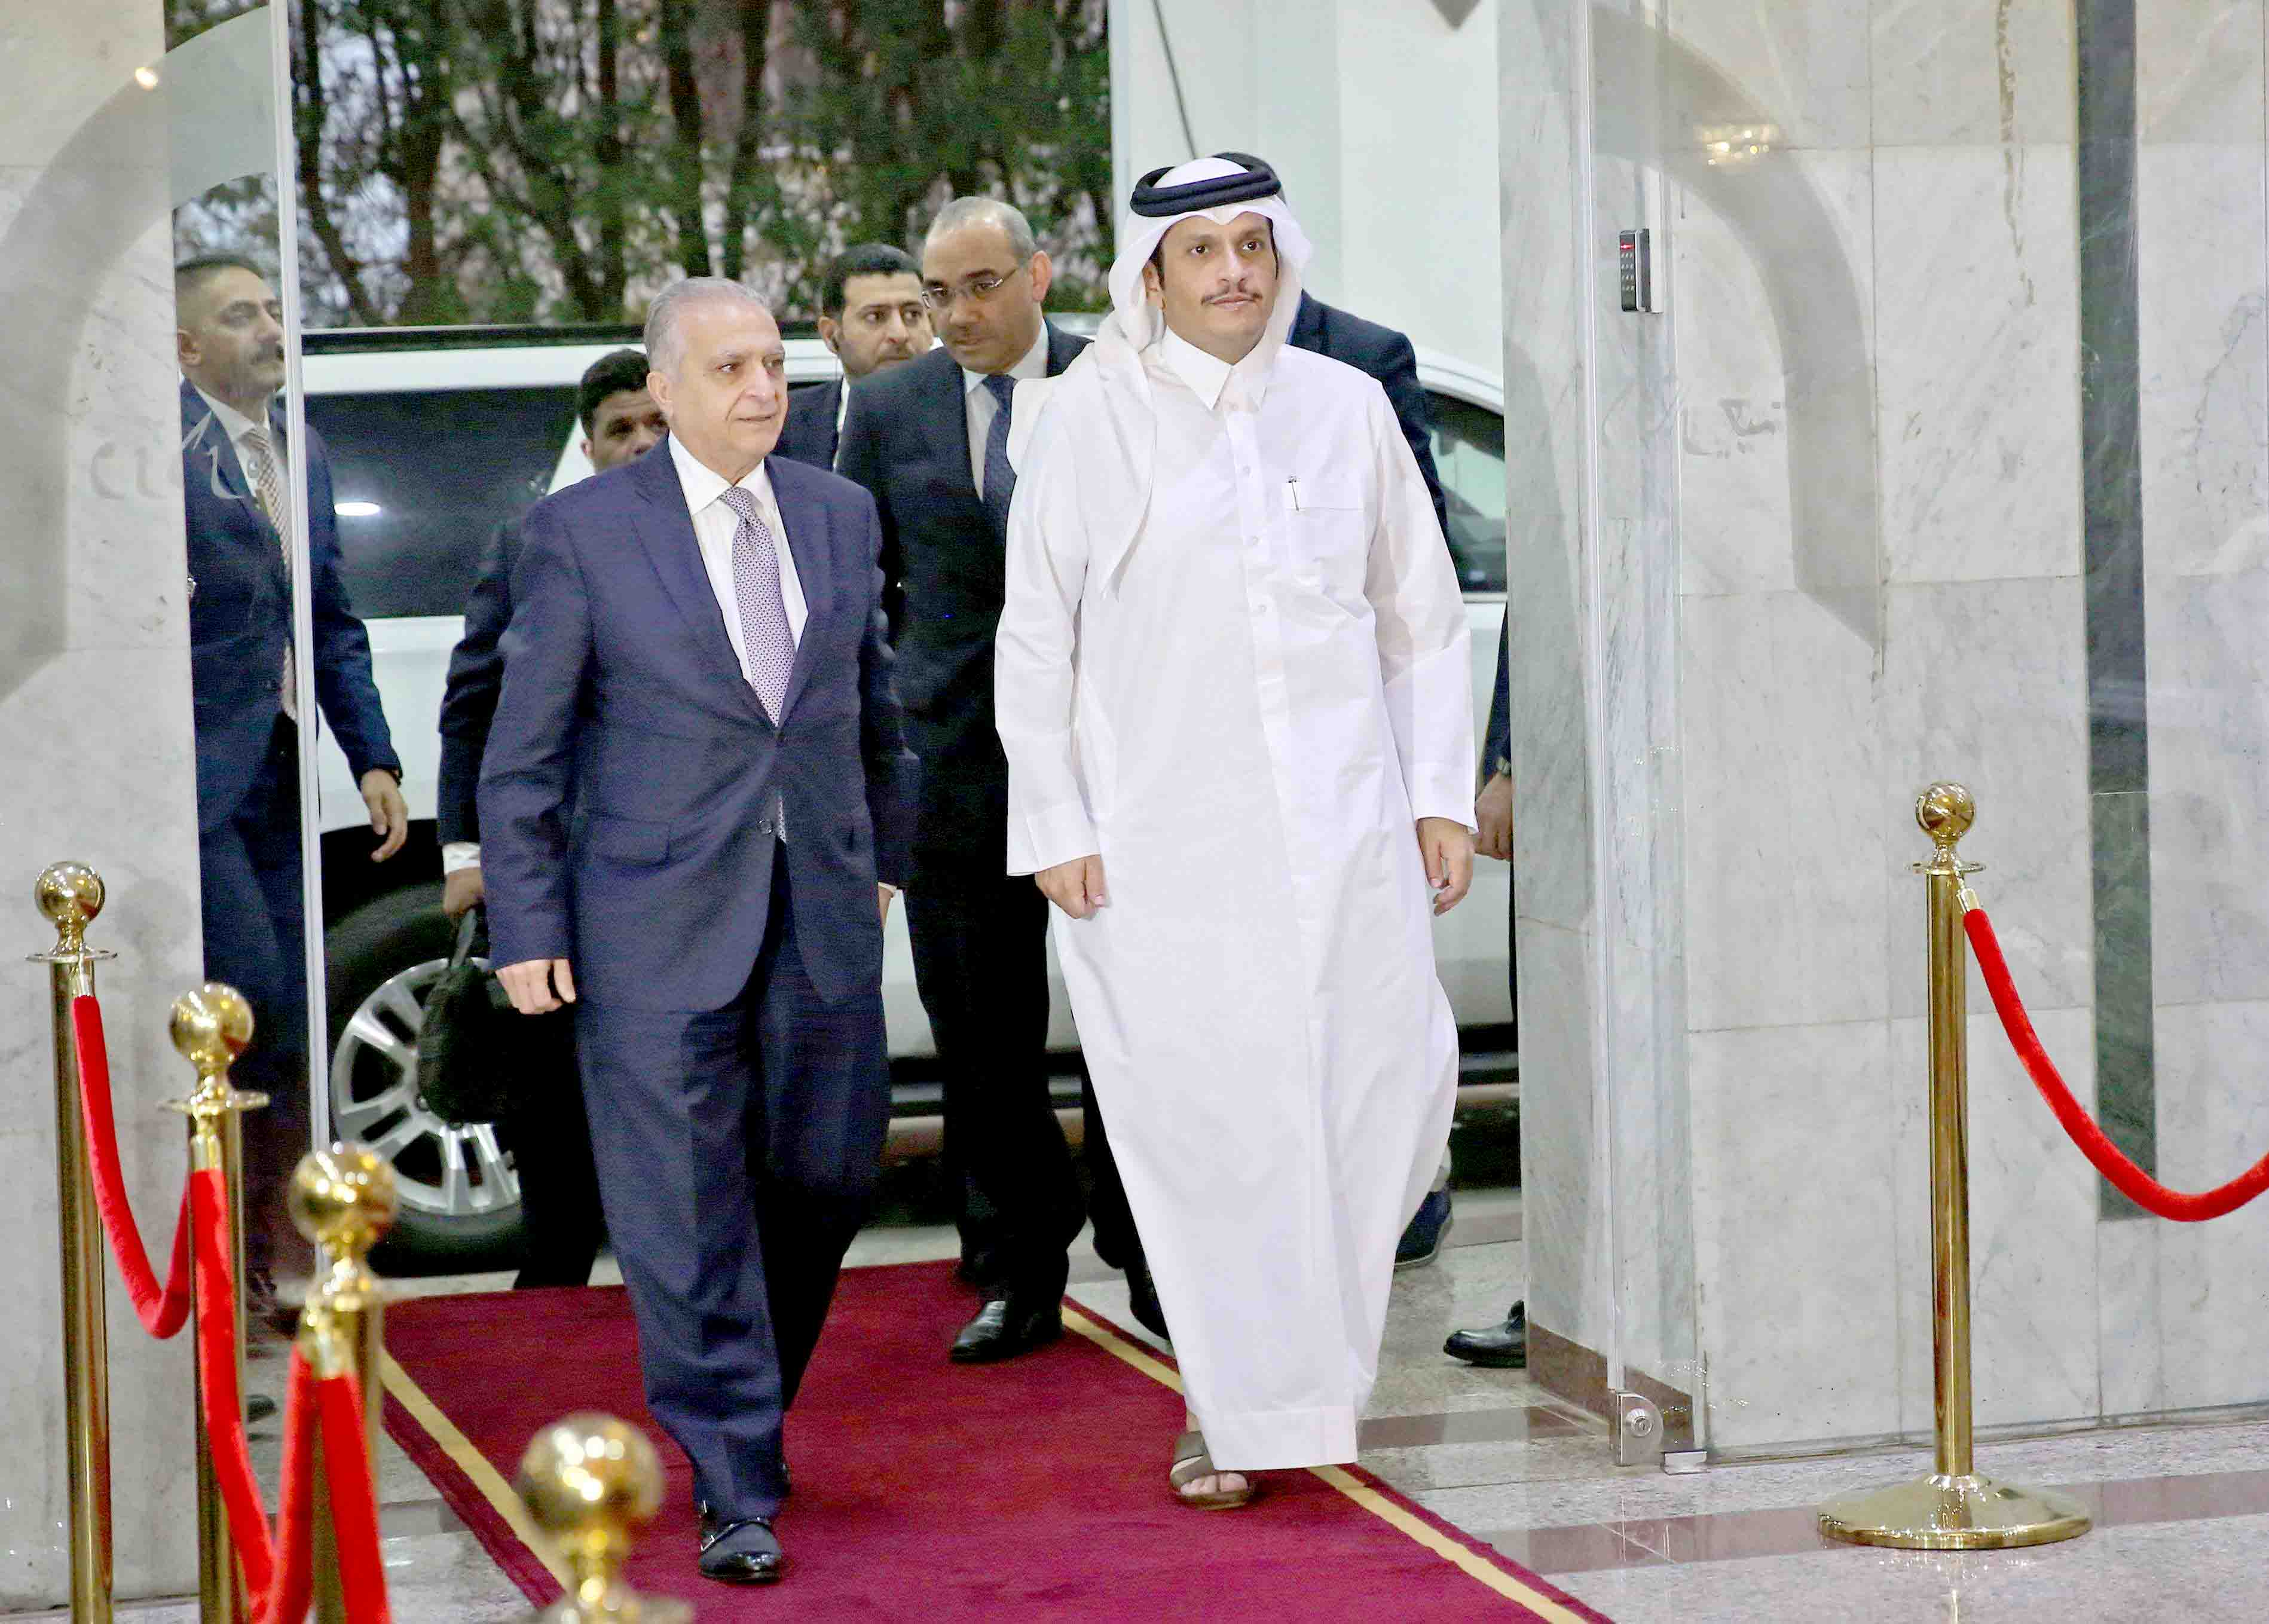 Wrong steps. Iraq's Foreign Minister Mohamed Ali Alhakim (L) walks with Qatar's Foreign Minister Sheikh Mohammed bin Abdulrahman bin Jassim al-Thani in Baghdad, on November 7. (Reuters)